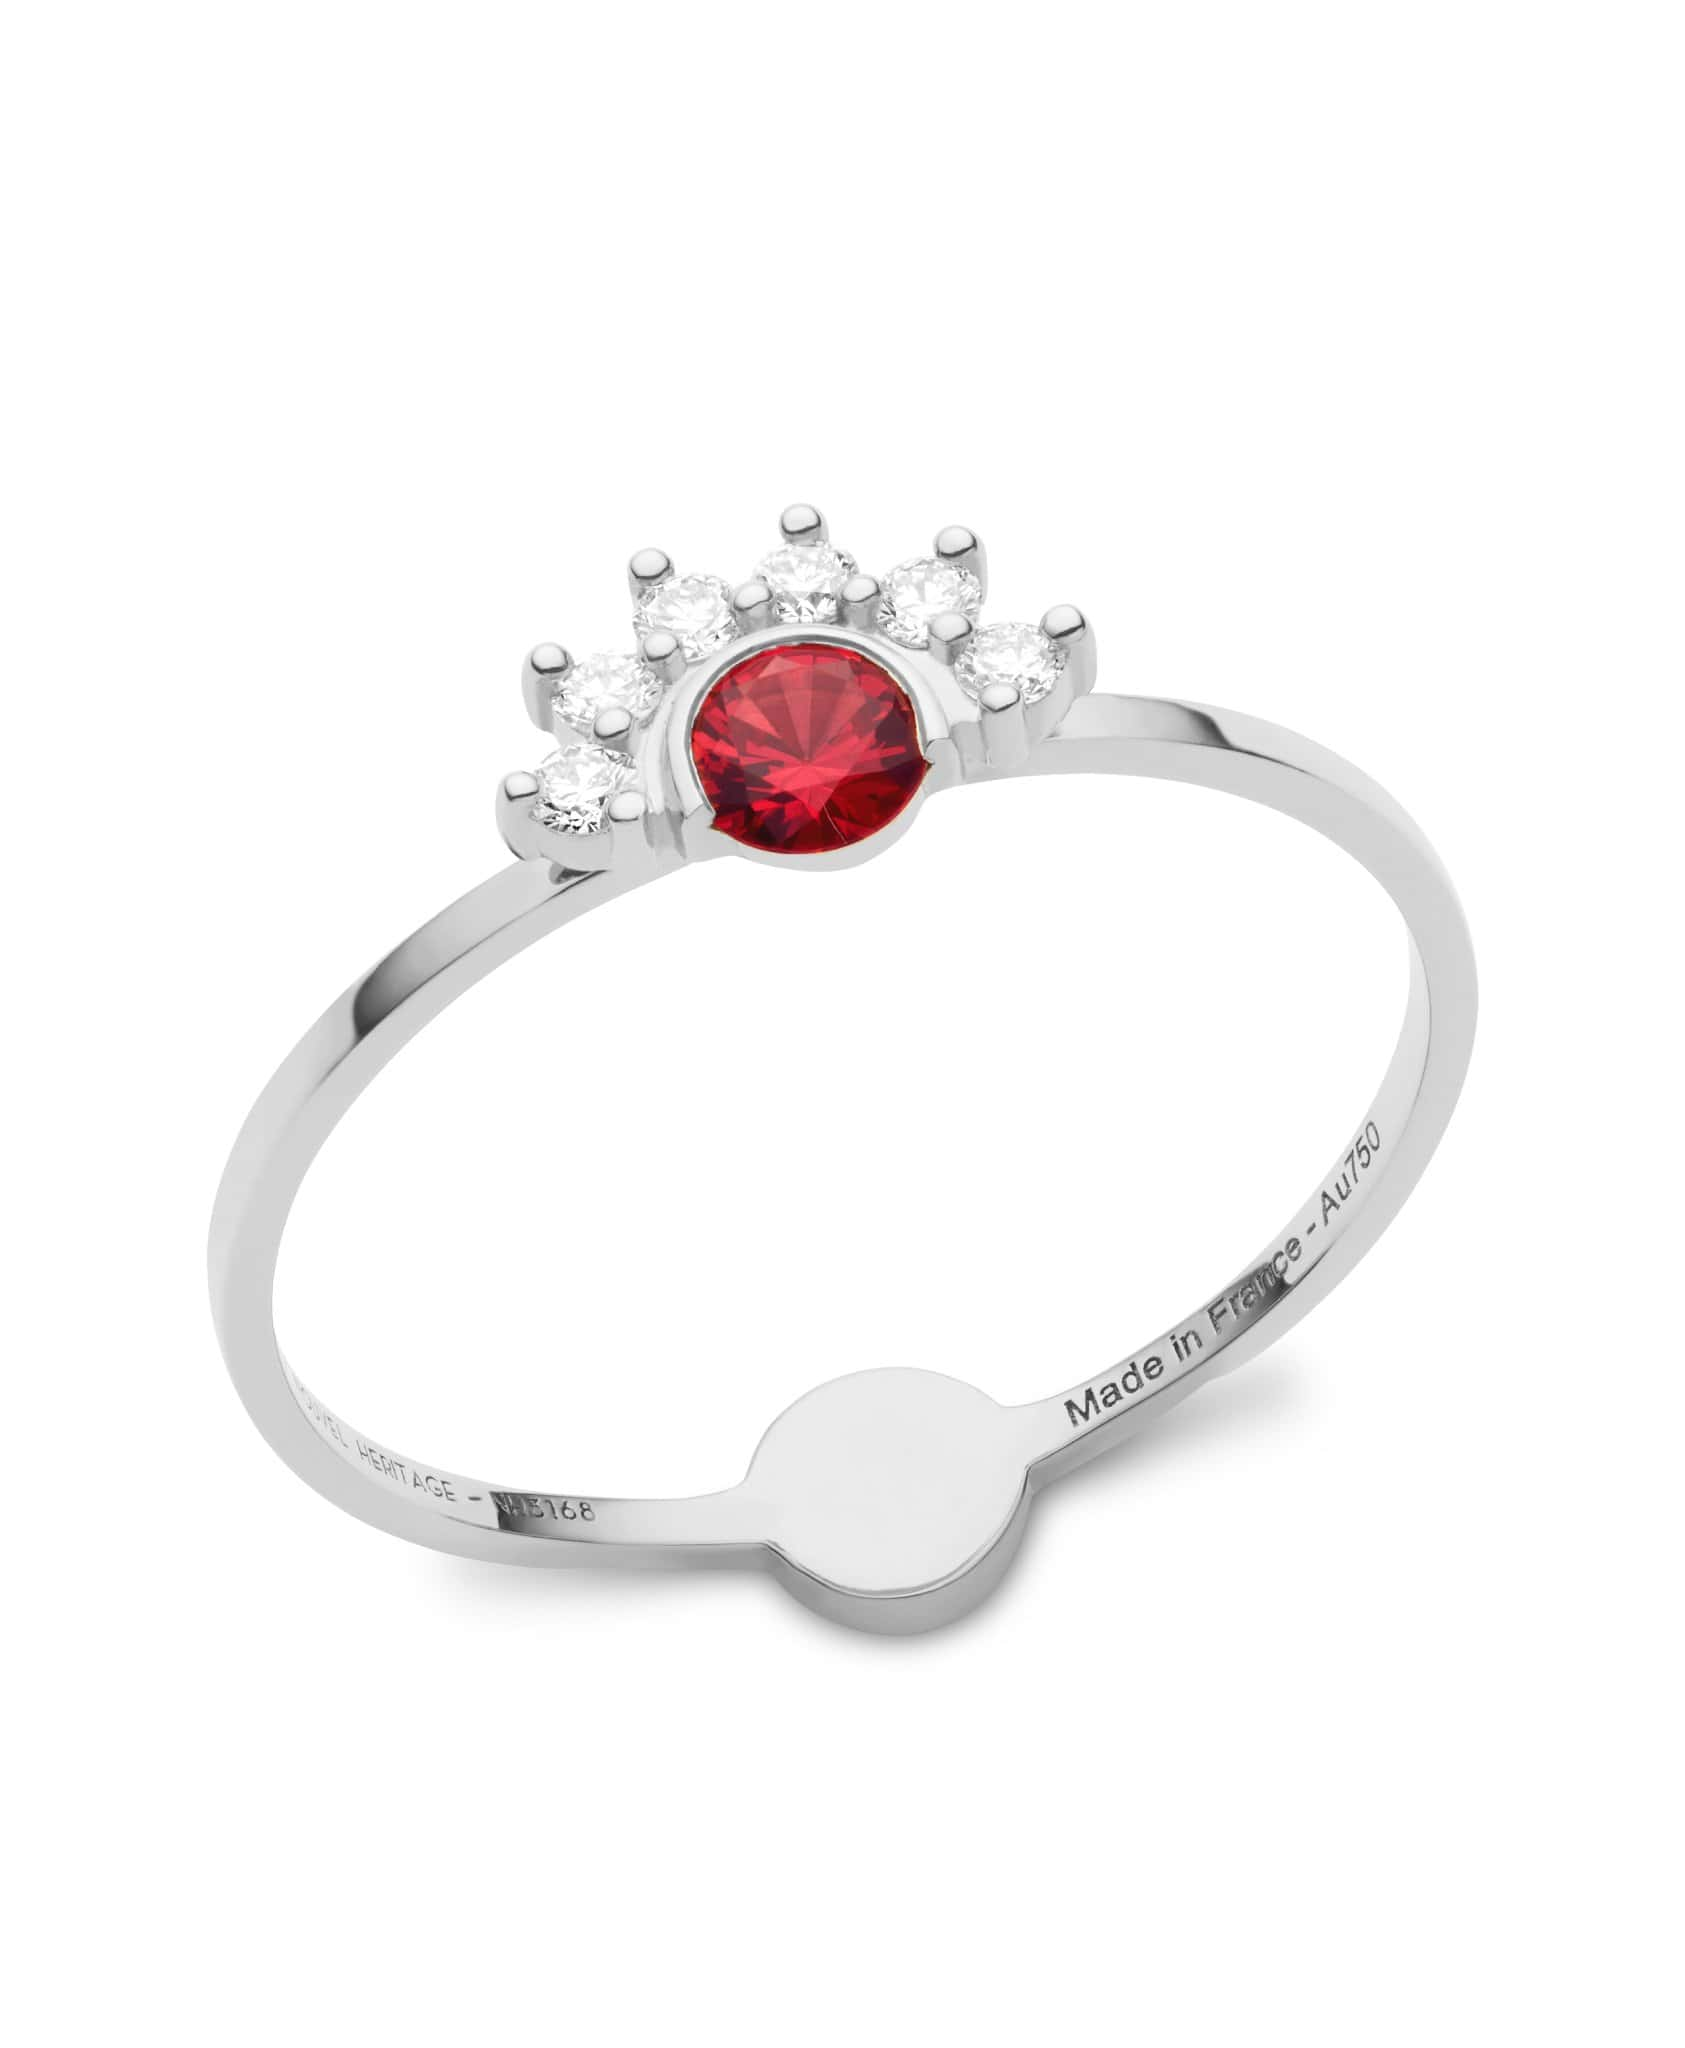 Red Spinel Ring: Discover Luxury Fine Jewelry | Nouvel Heritage || White Gold